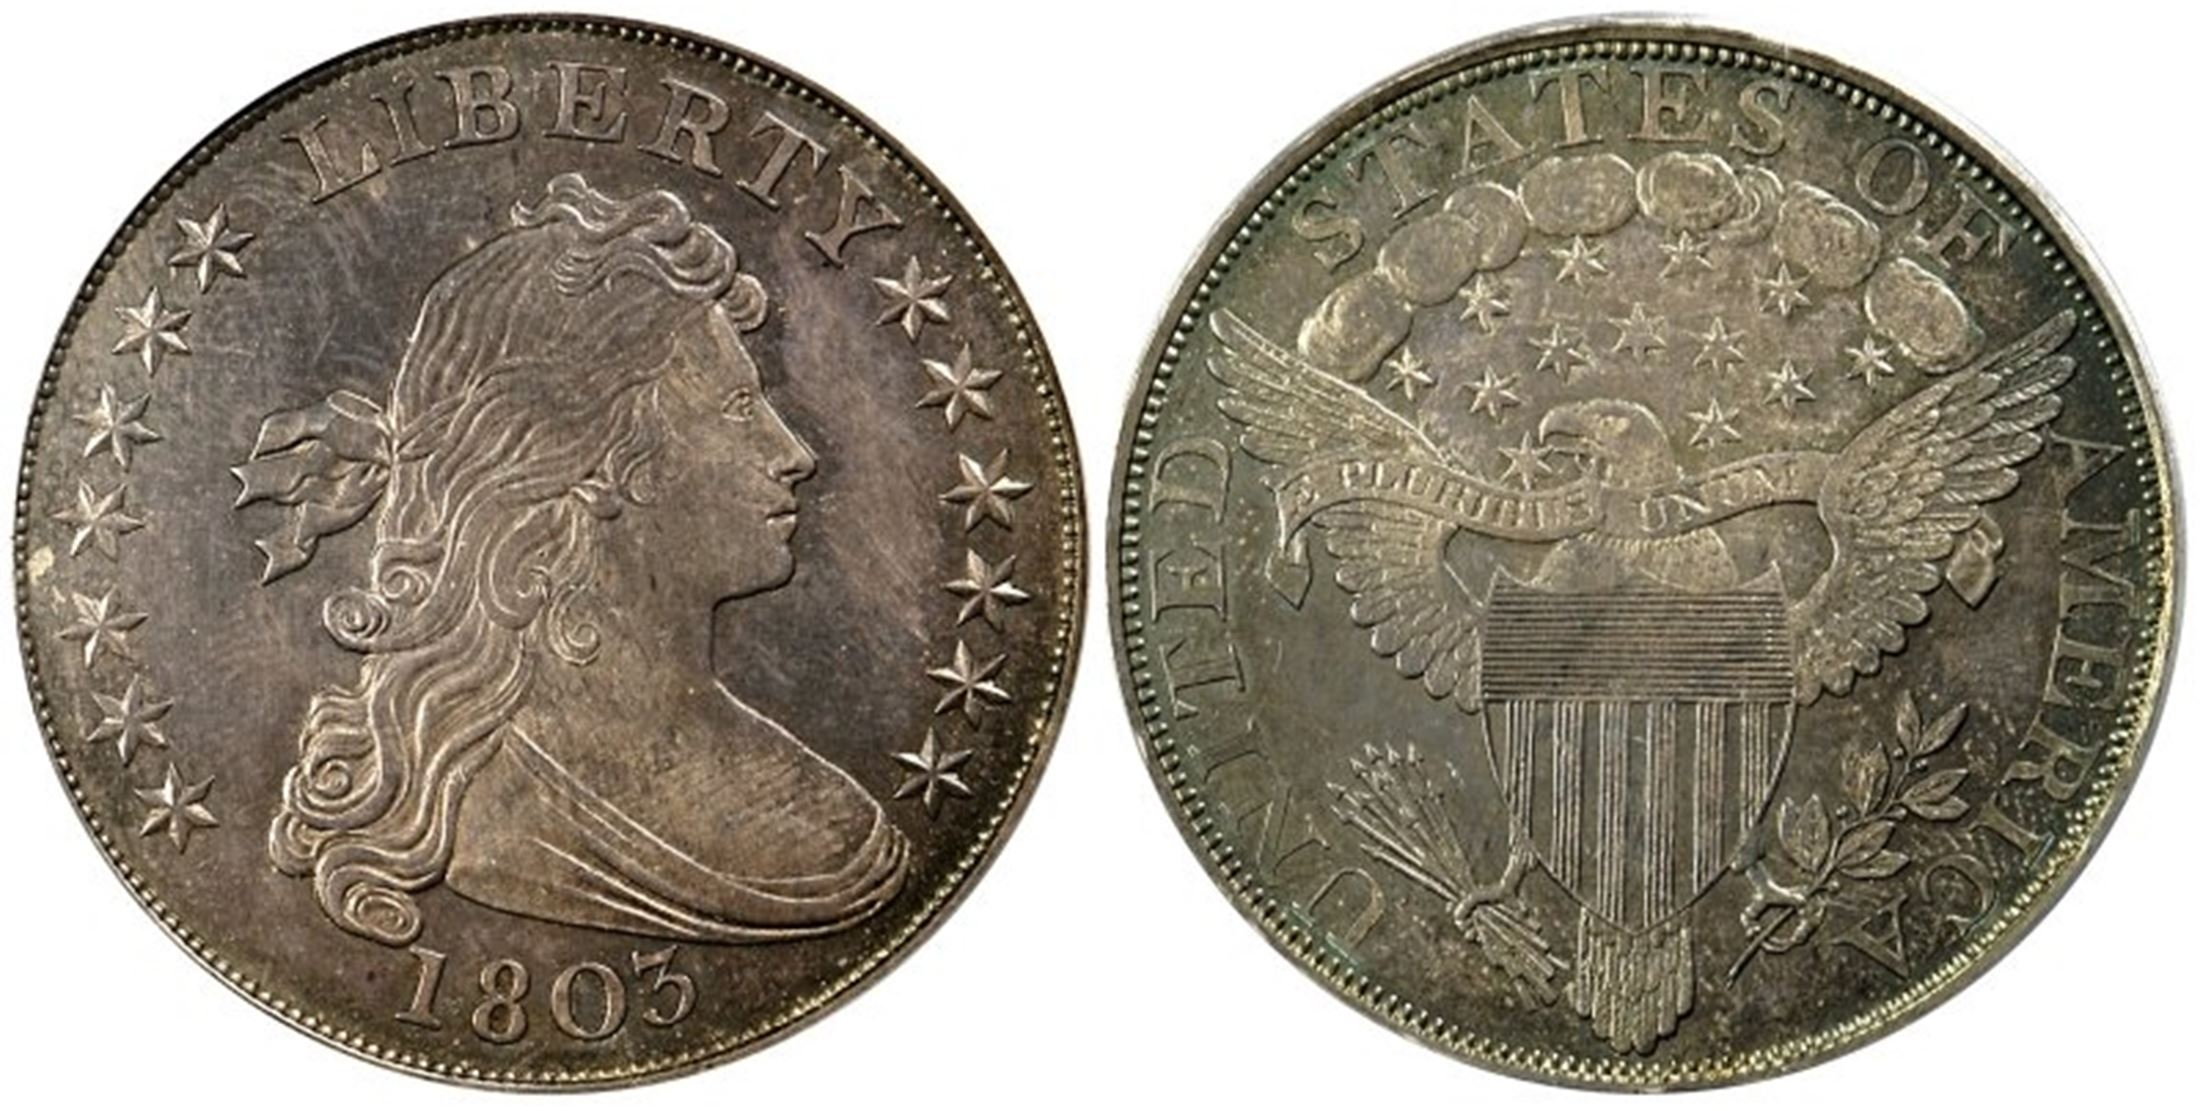 1803 1 Proof Pcgs Coinfacts